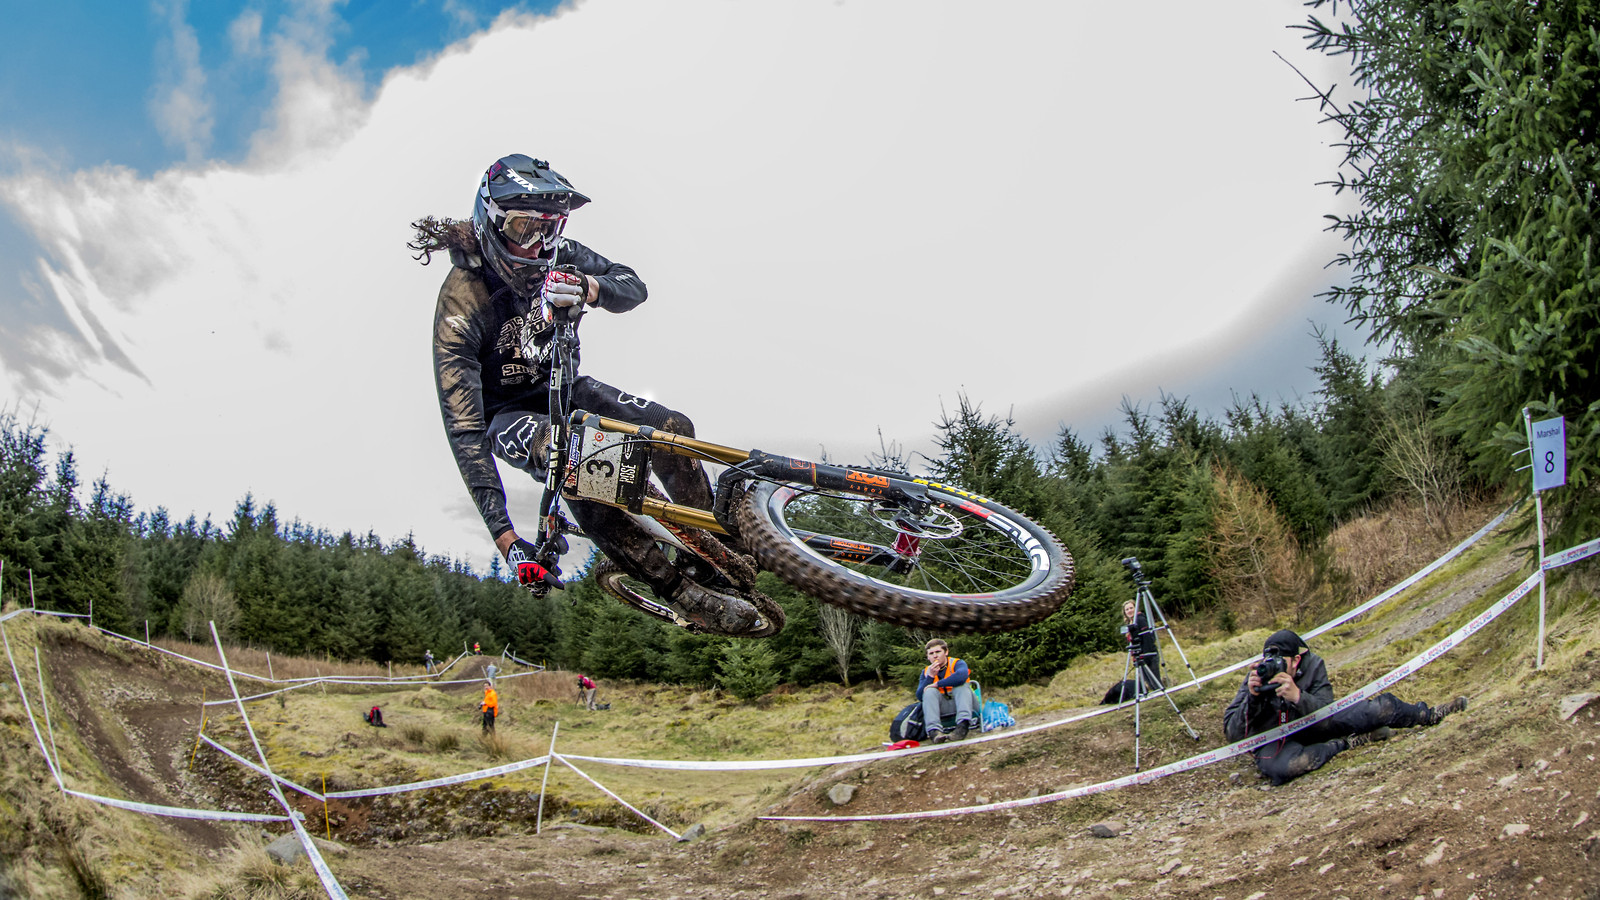 josh ae bds - phunkt.com - Mountain Biking Pictures - Vital MTB